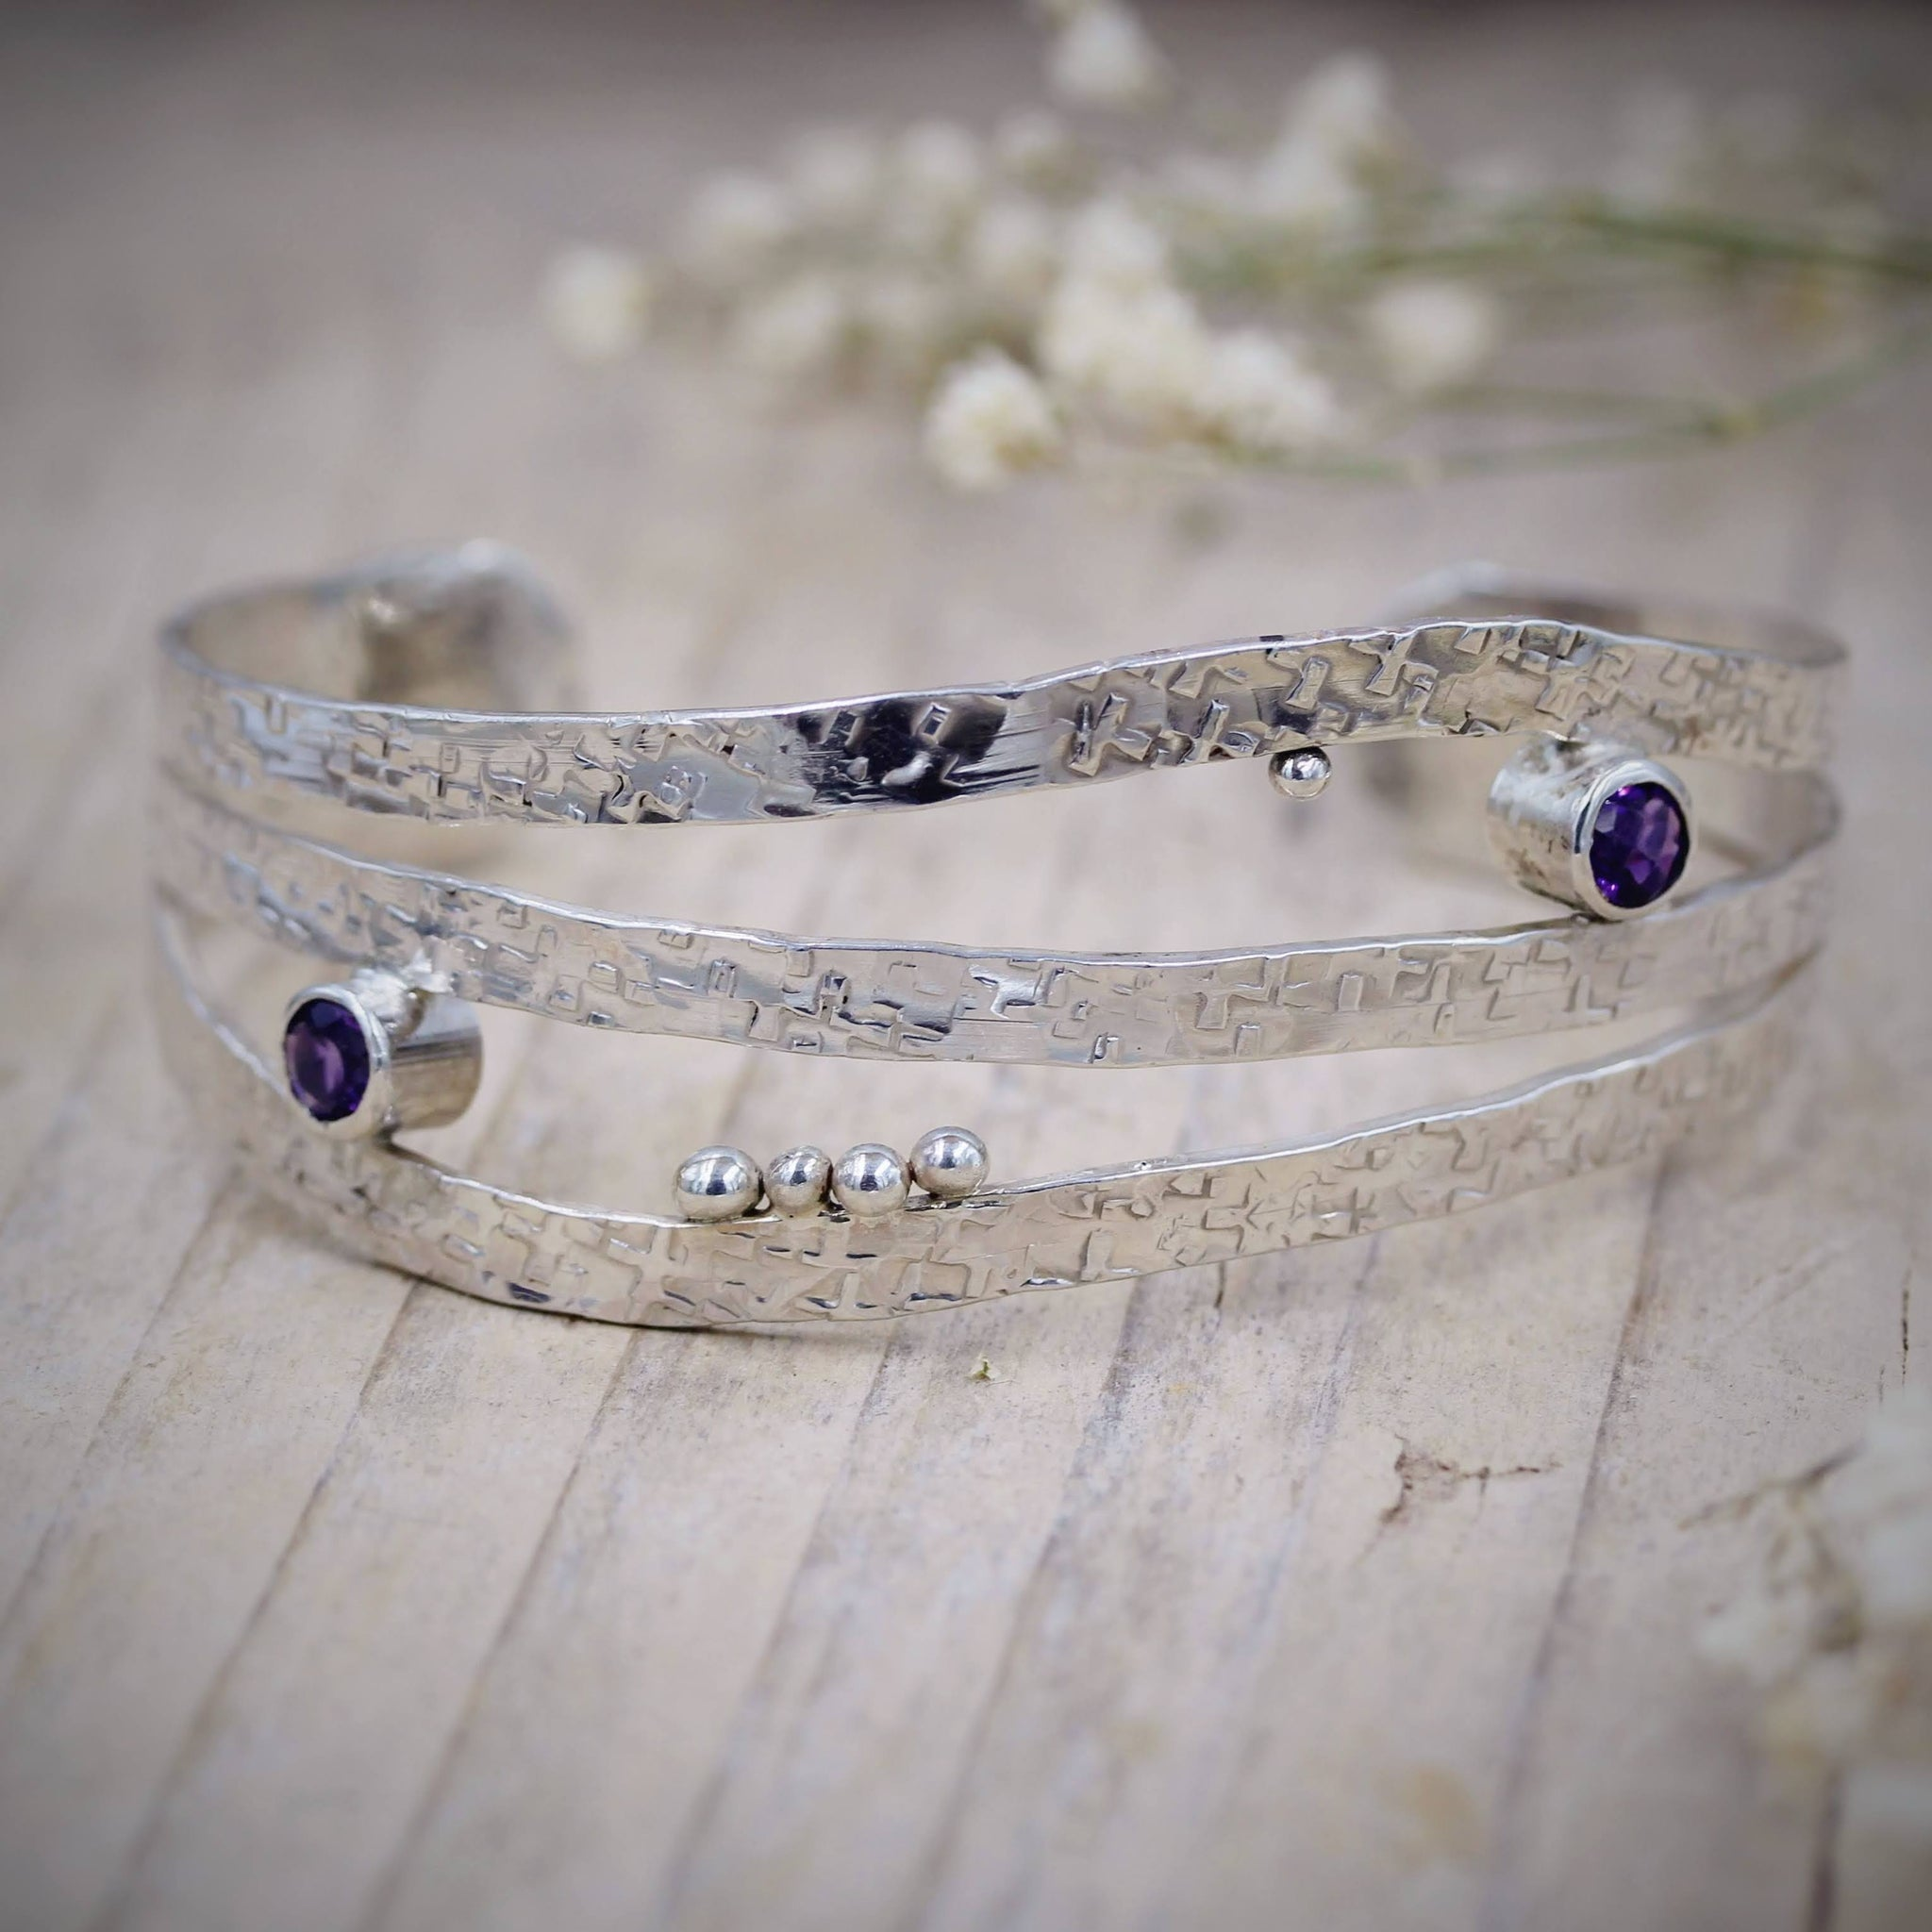 Handcrafted silver bracelets and bangles, made in the UK by Gemma Tremayne Jewellery